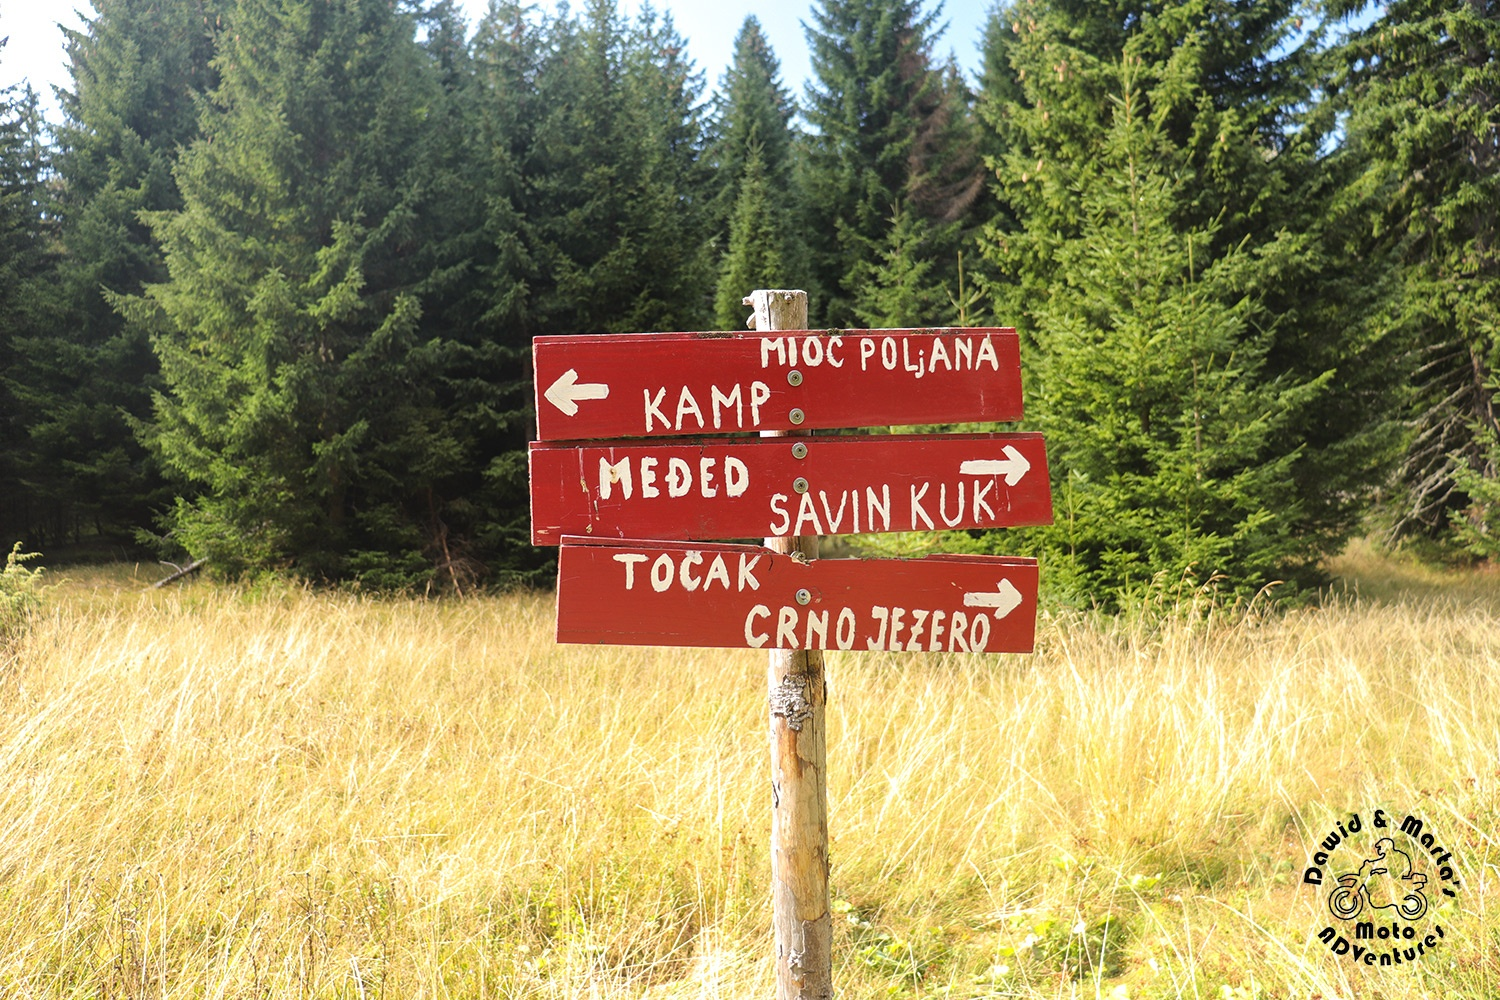 Crossing sign on a trail leading to Savin Kuk and Meded from Razvrsje